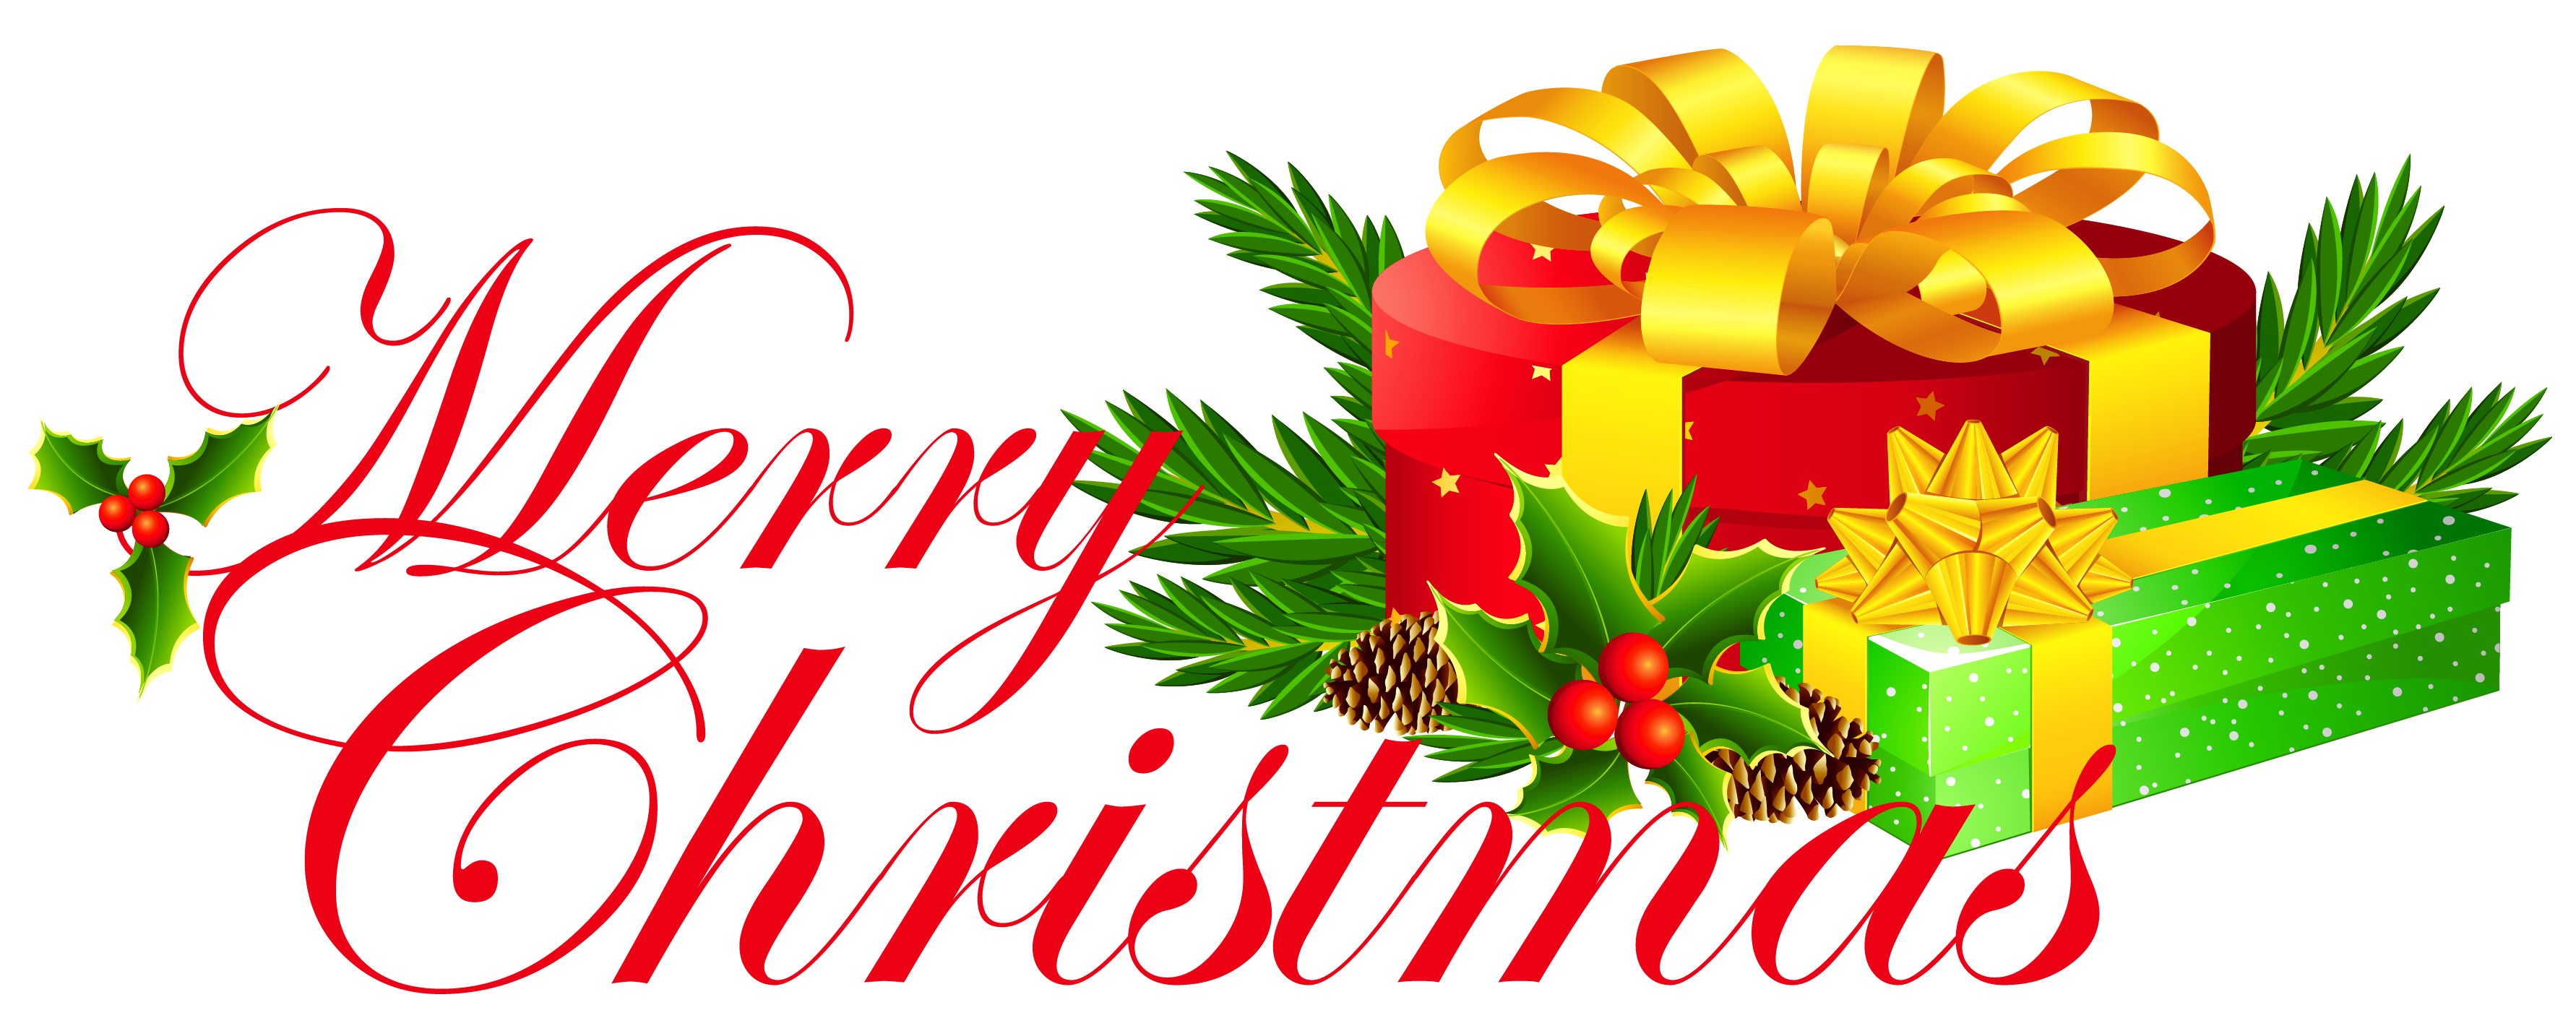 3565x1427 Clip Art Clip Art Merry Christmas